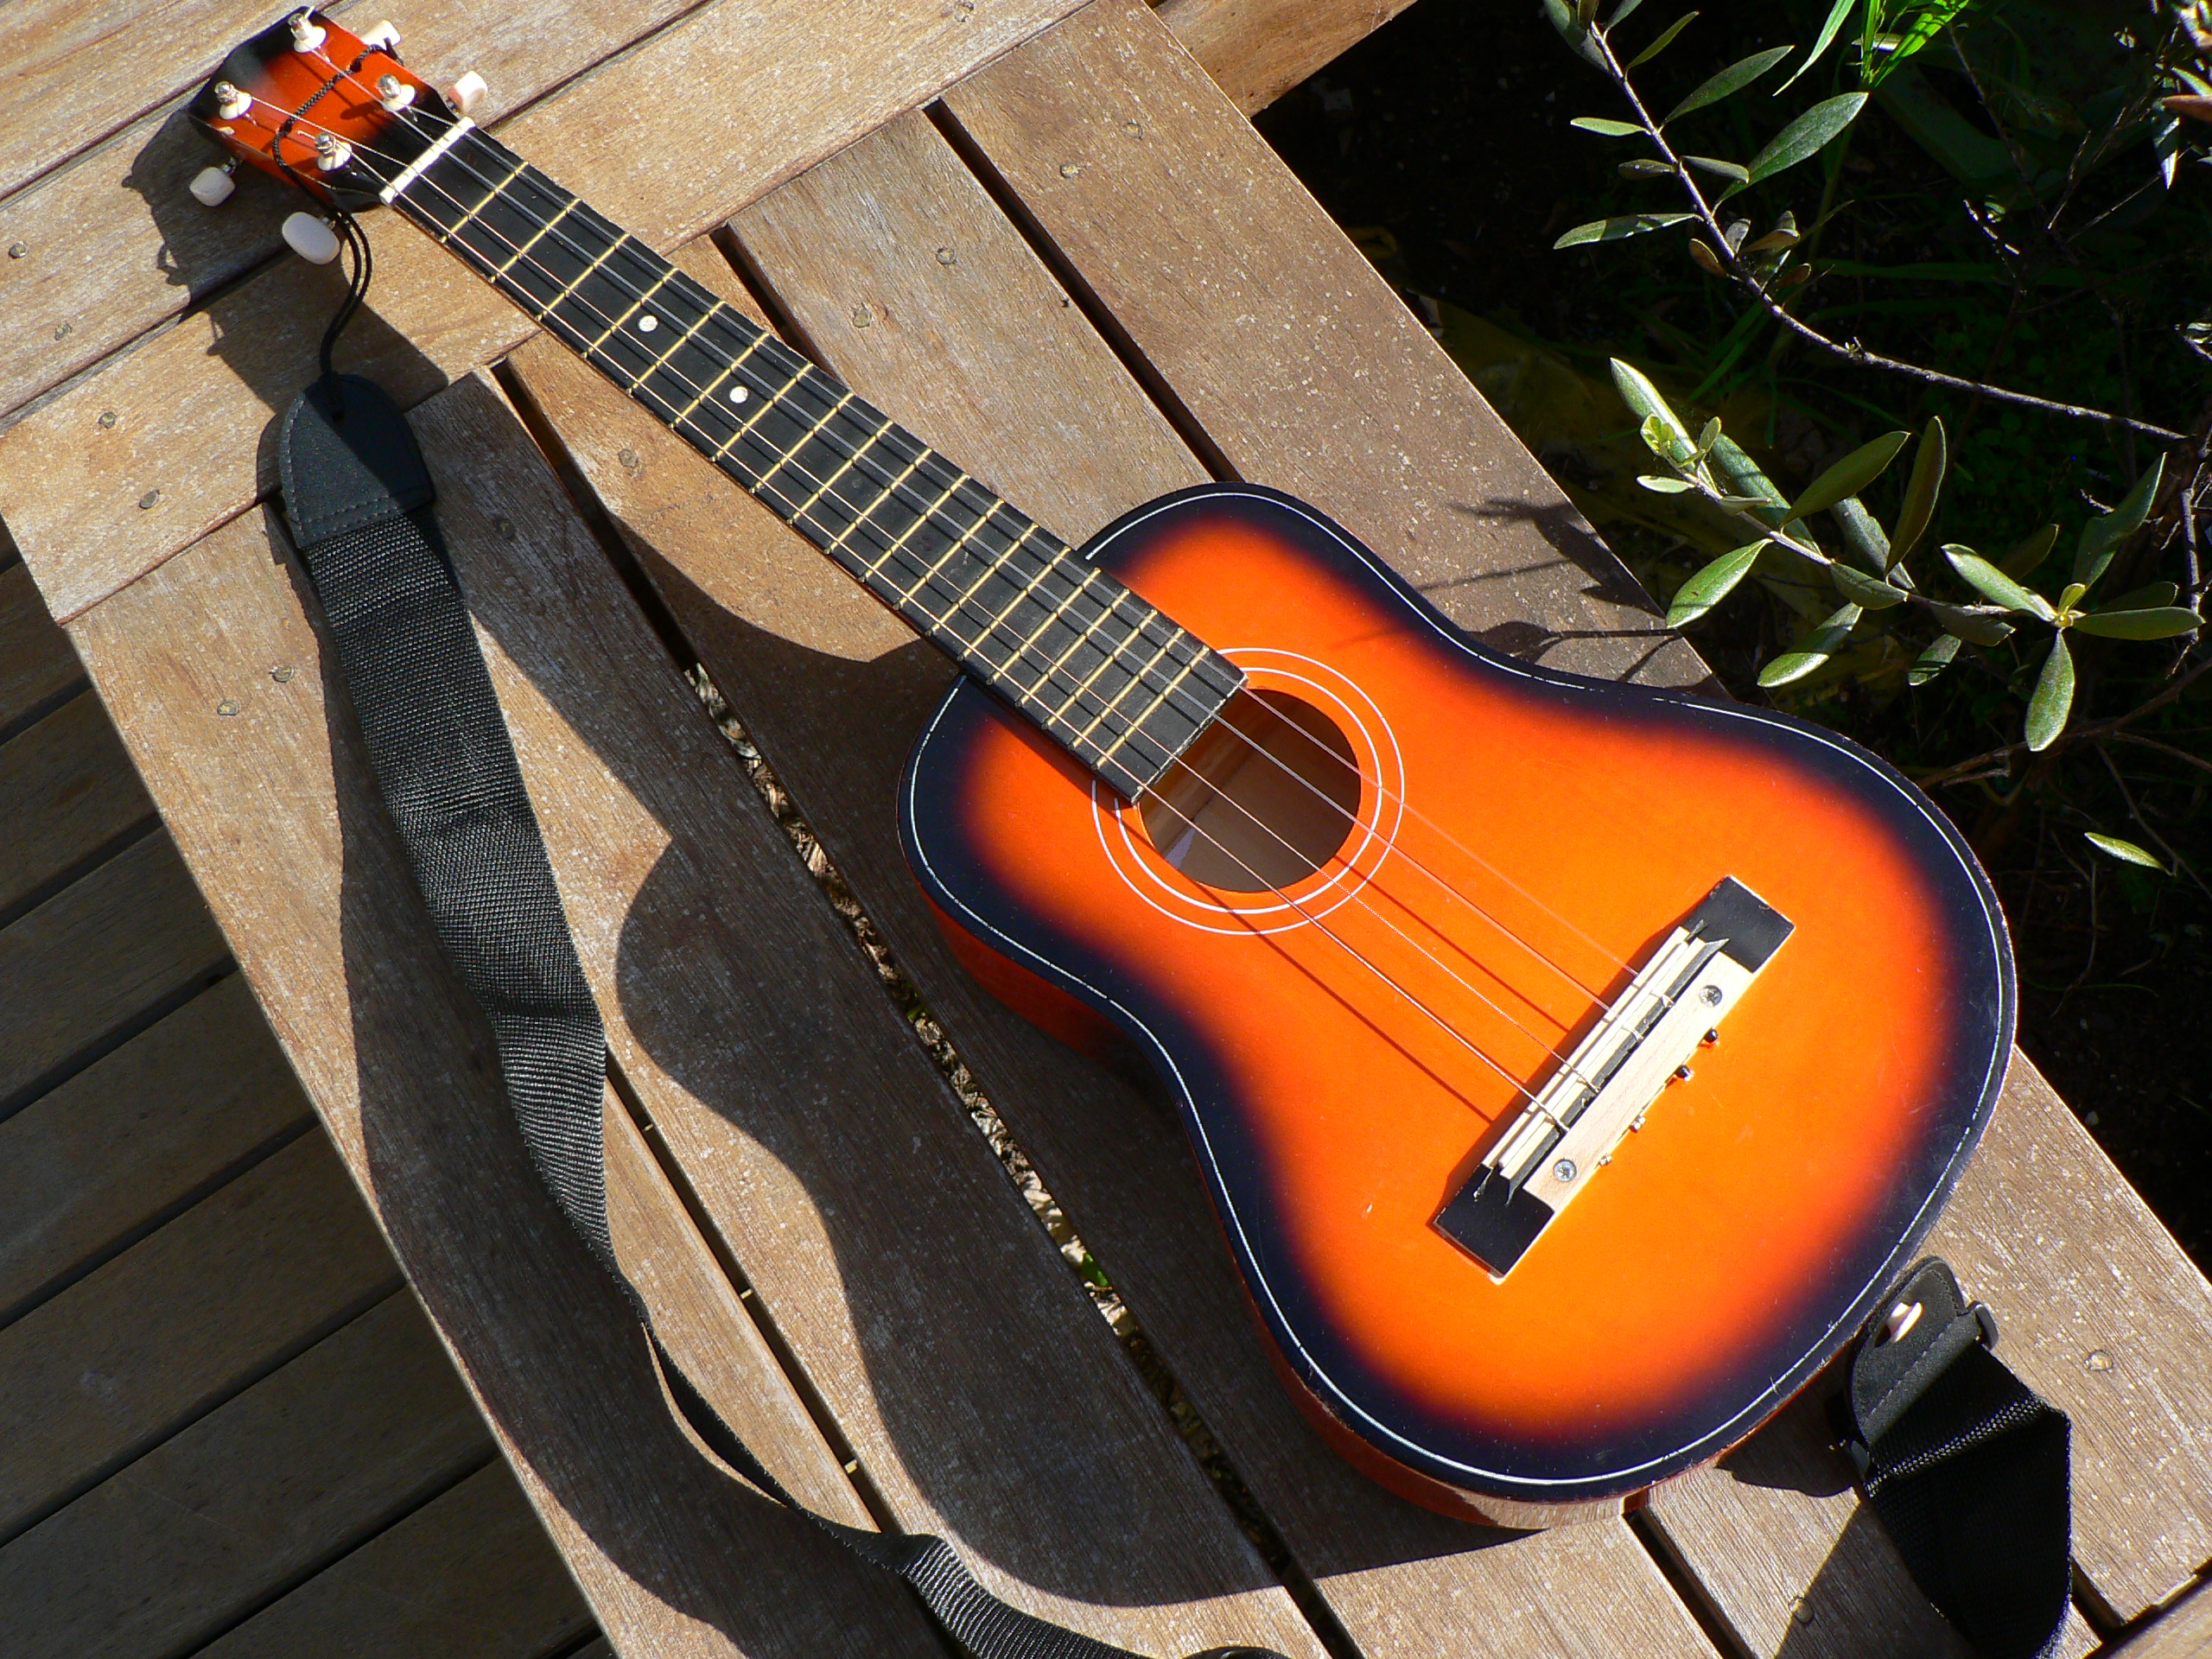 Picture of Make a Baritone Ukulele From a $10 Toy Guitar